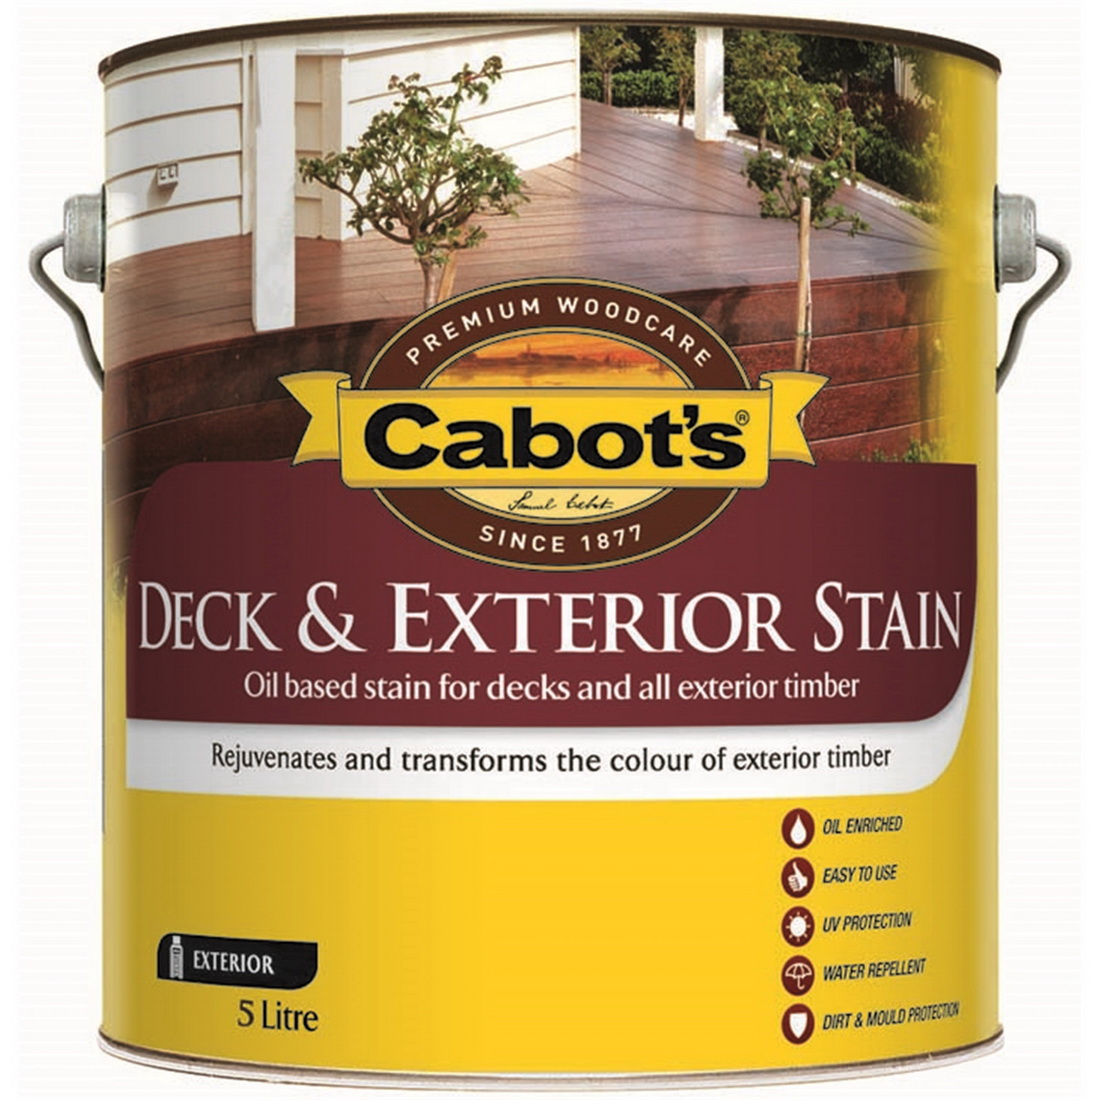 Deck & Exterior Stain Oil Based Silver Beech 5L 826W0139-5L